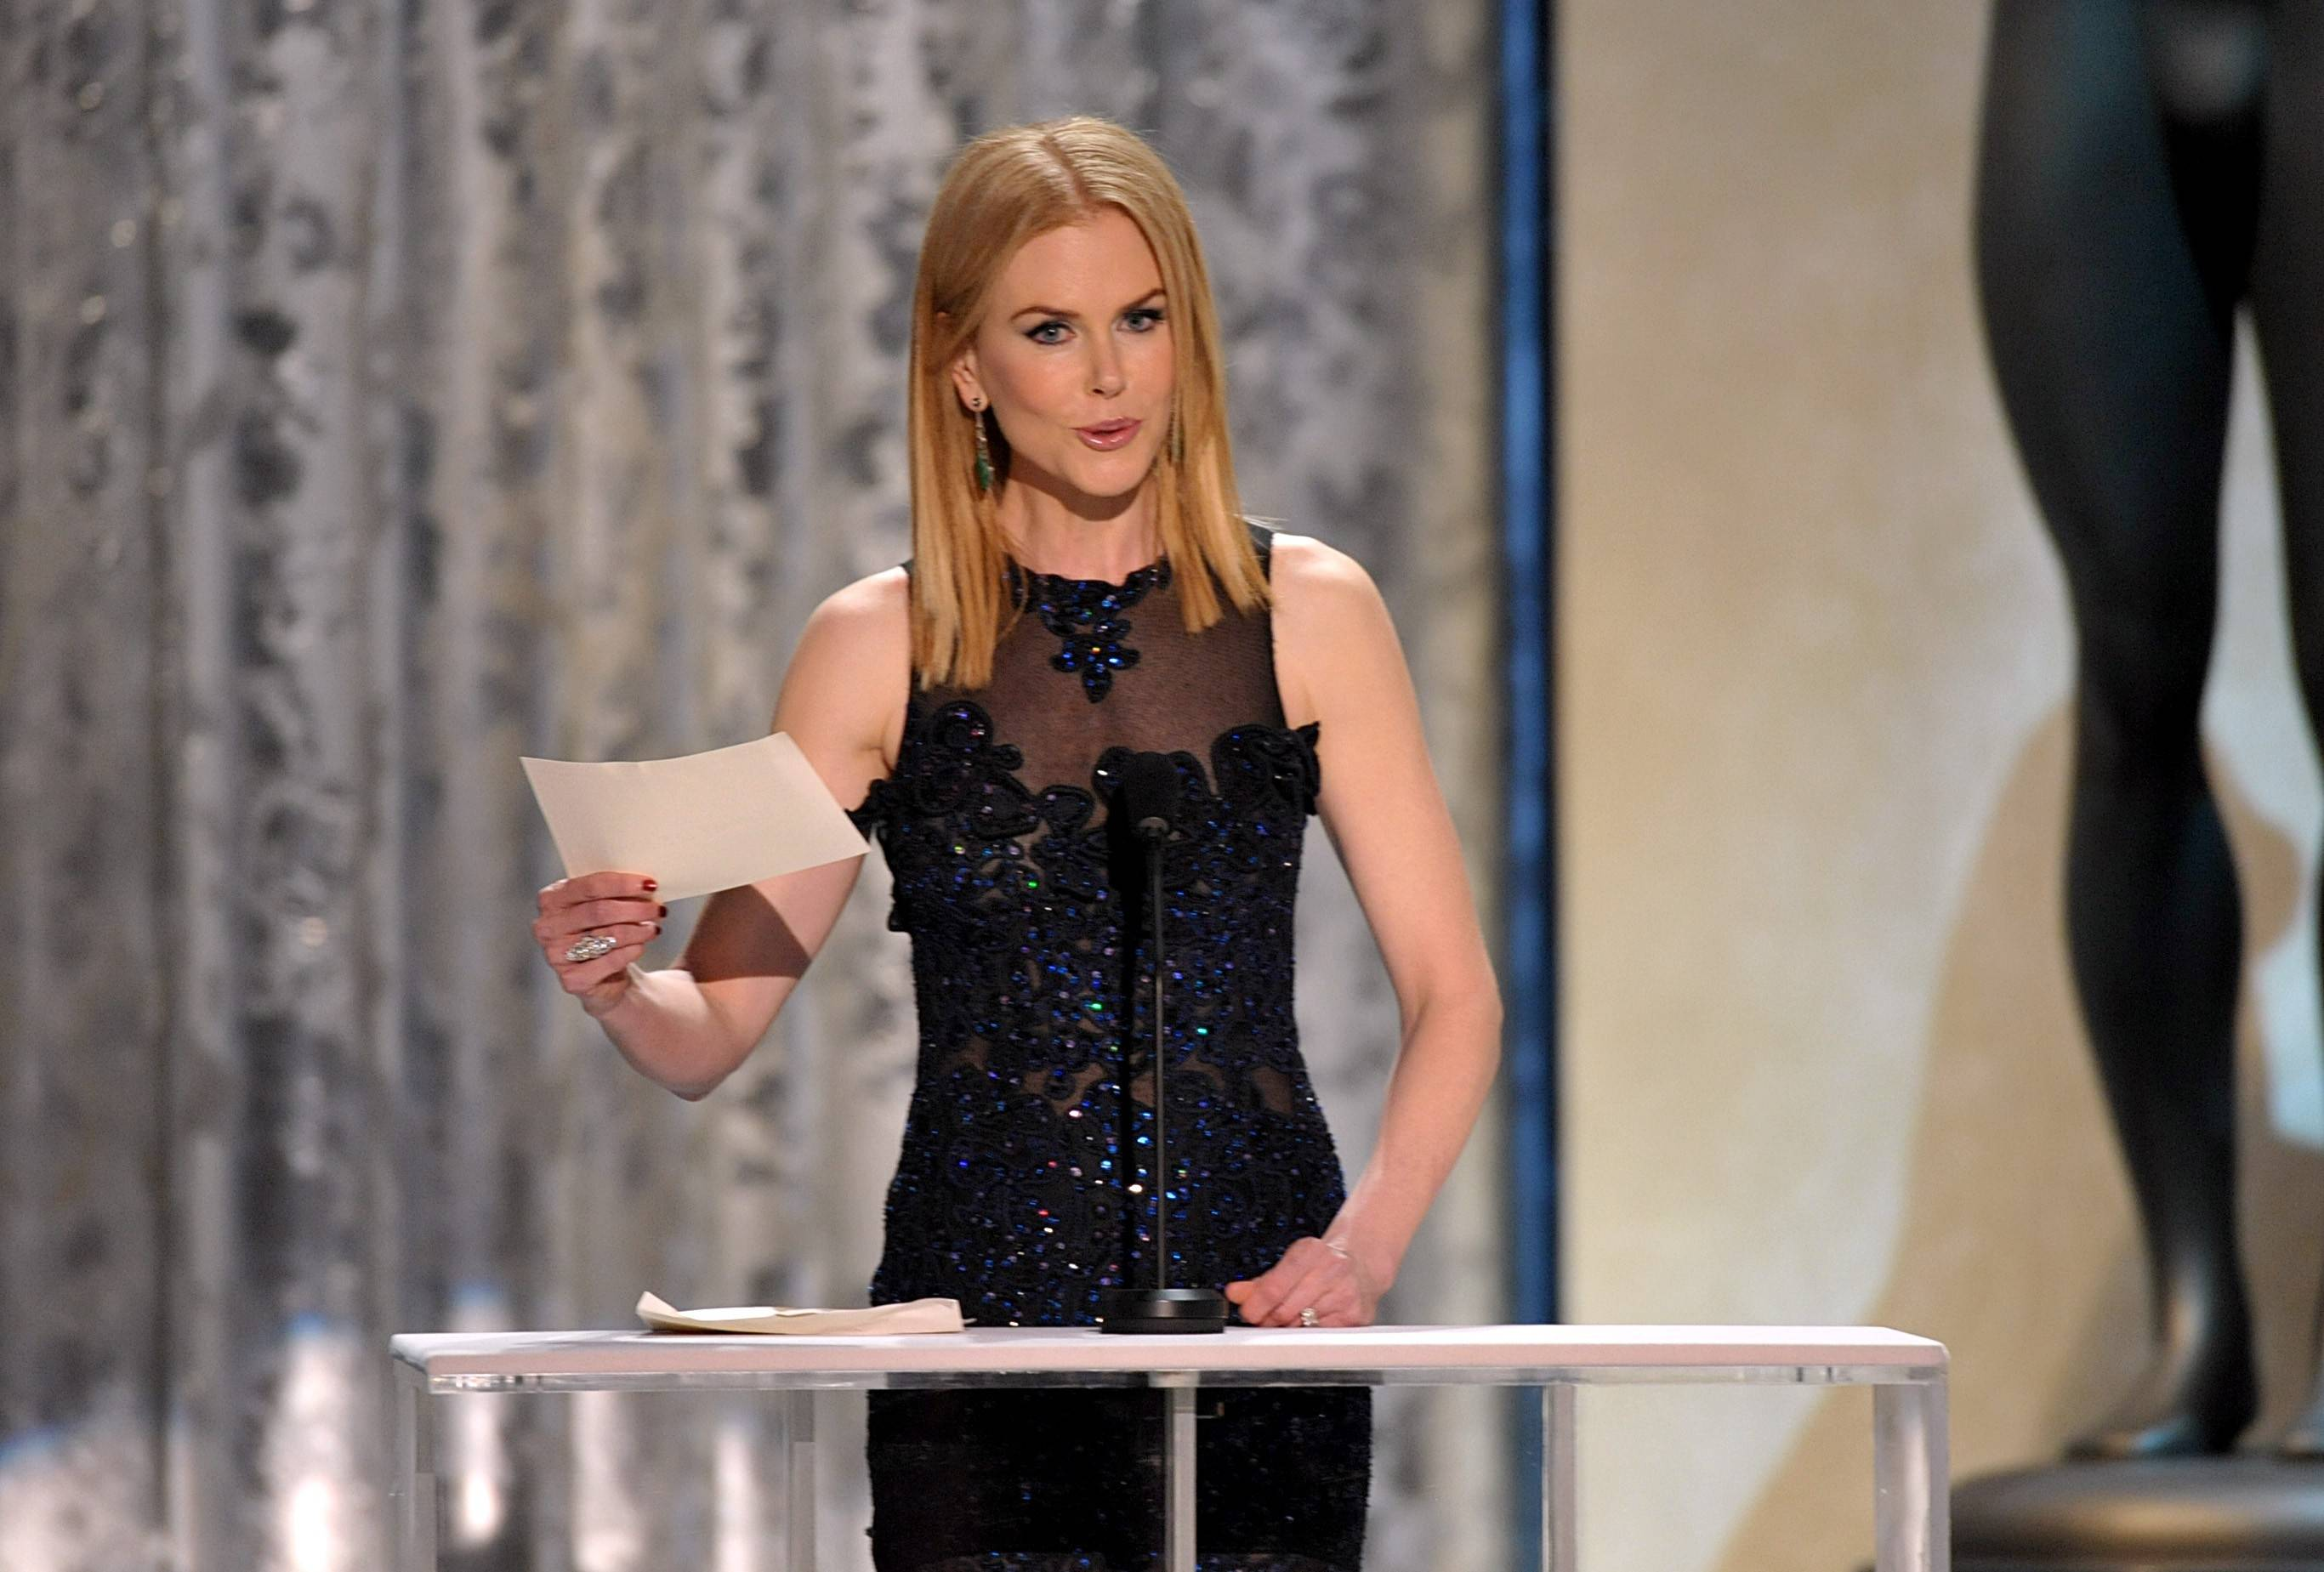 Nicole Kidman gets ready to present an award during the SAG ceremony.